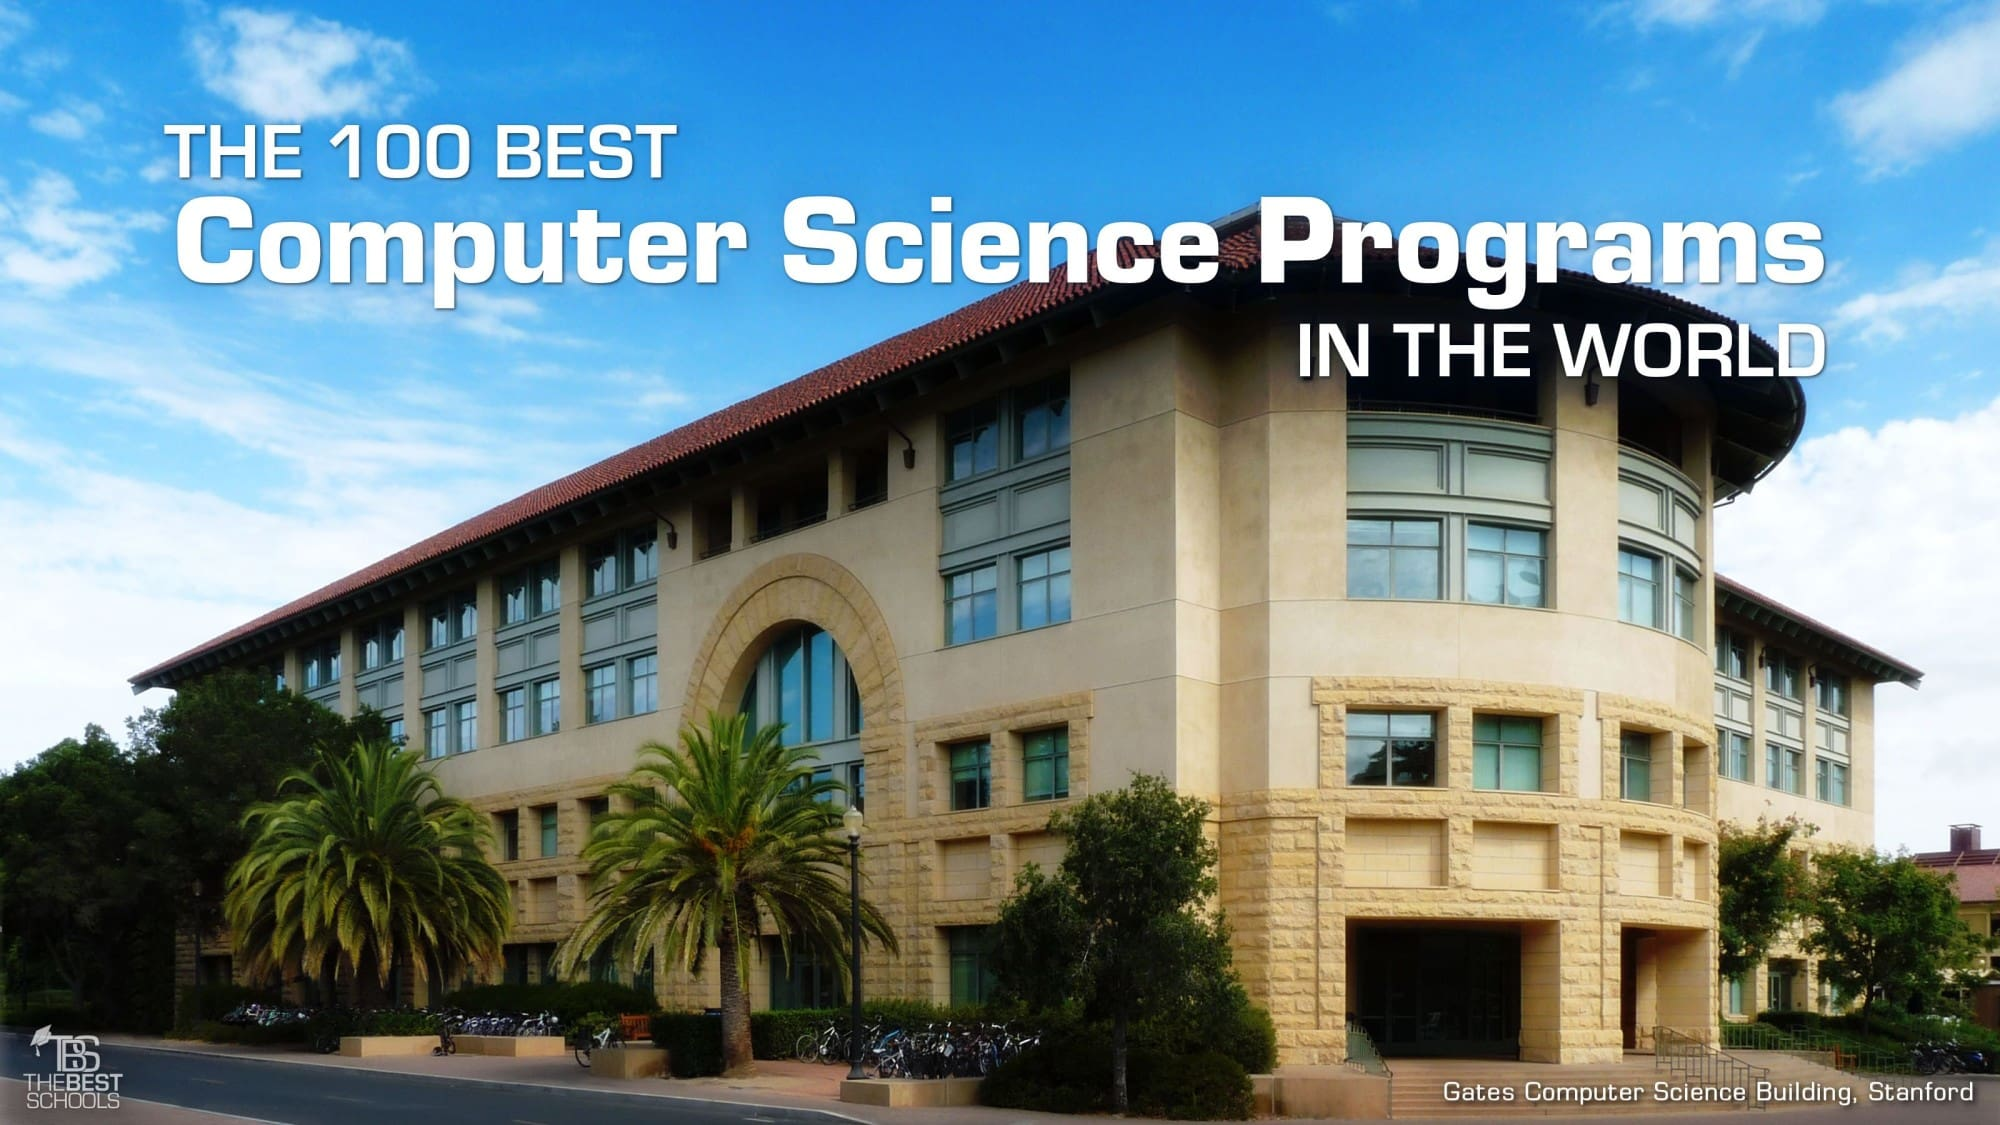 The 50 Best Computer Science Programs in the World